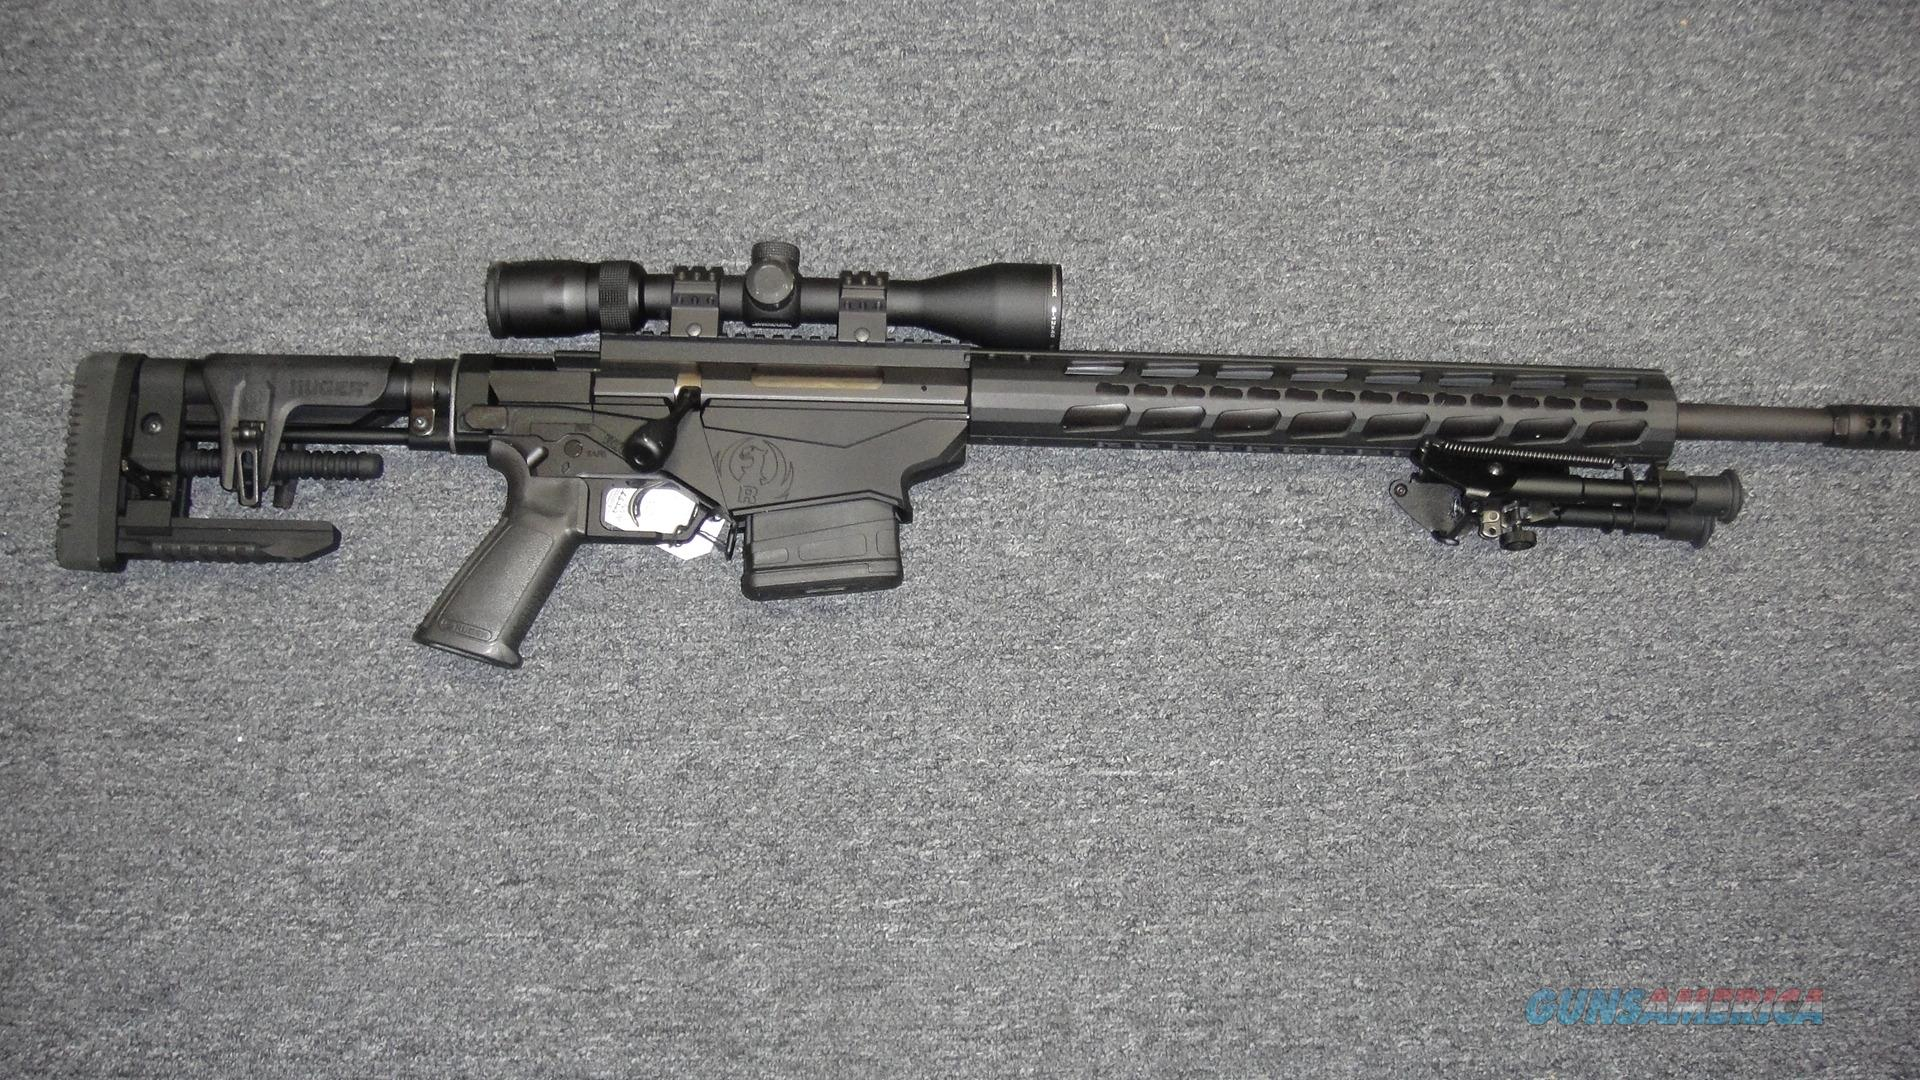 Ruger Precision rifle 308 (used)  Guns > Rifles > Ruger Rifles > Precision Rifle Series